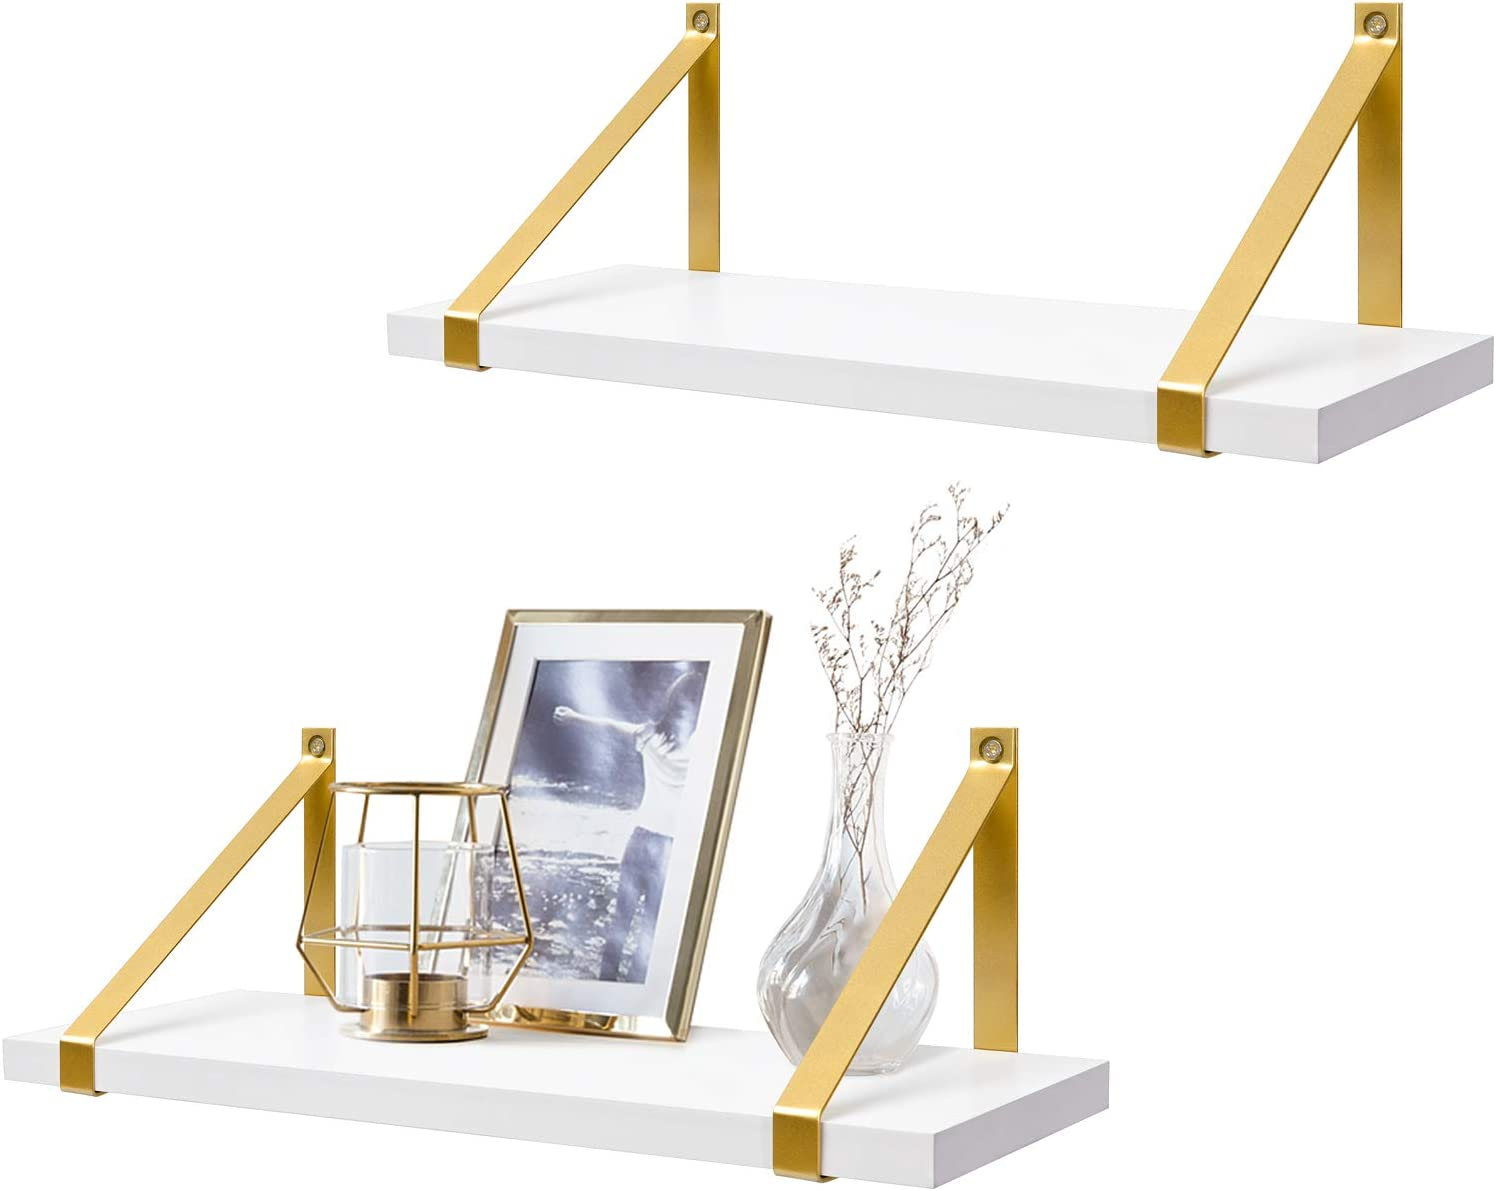 Mkono Morden Floating Shelves Wall Mounted Decorative Shelves Set of 2 White Wooden Shelves with Gold Metal Brackets for Bathroom Living Room Bedroom Kitchen Office, 17 Inches